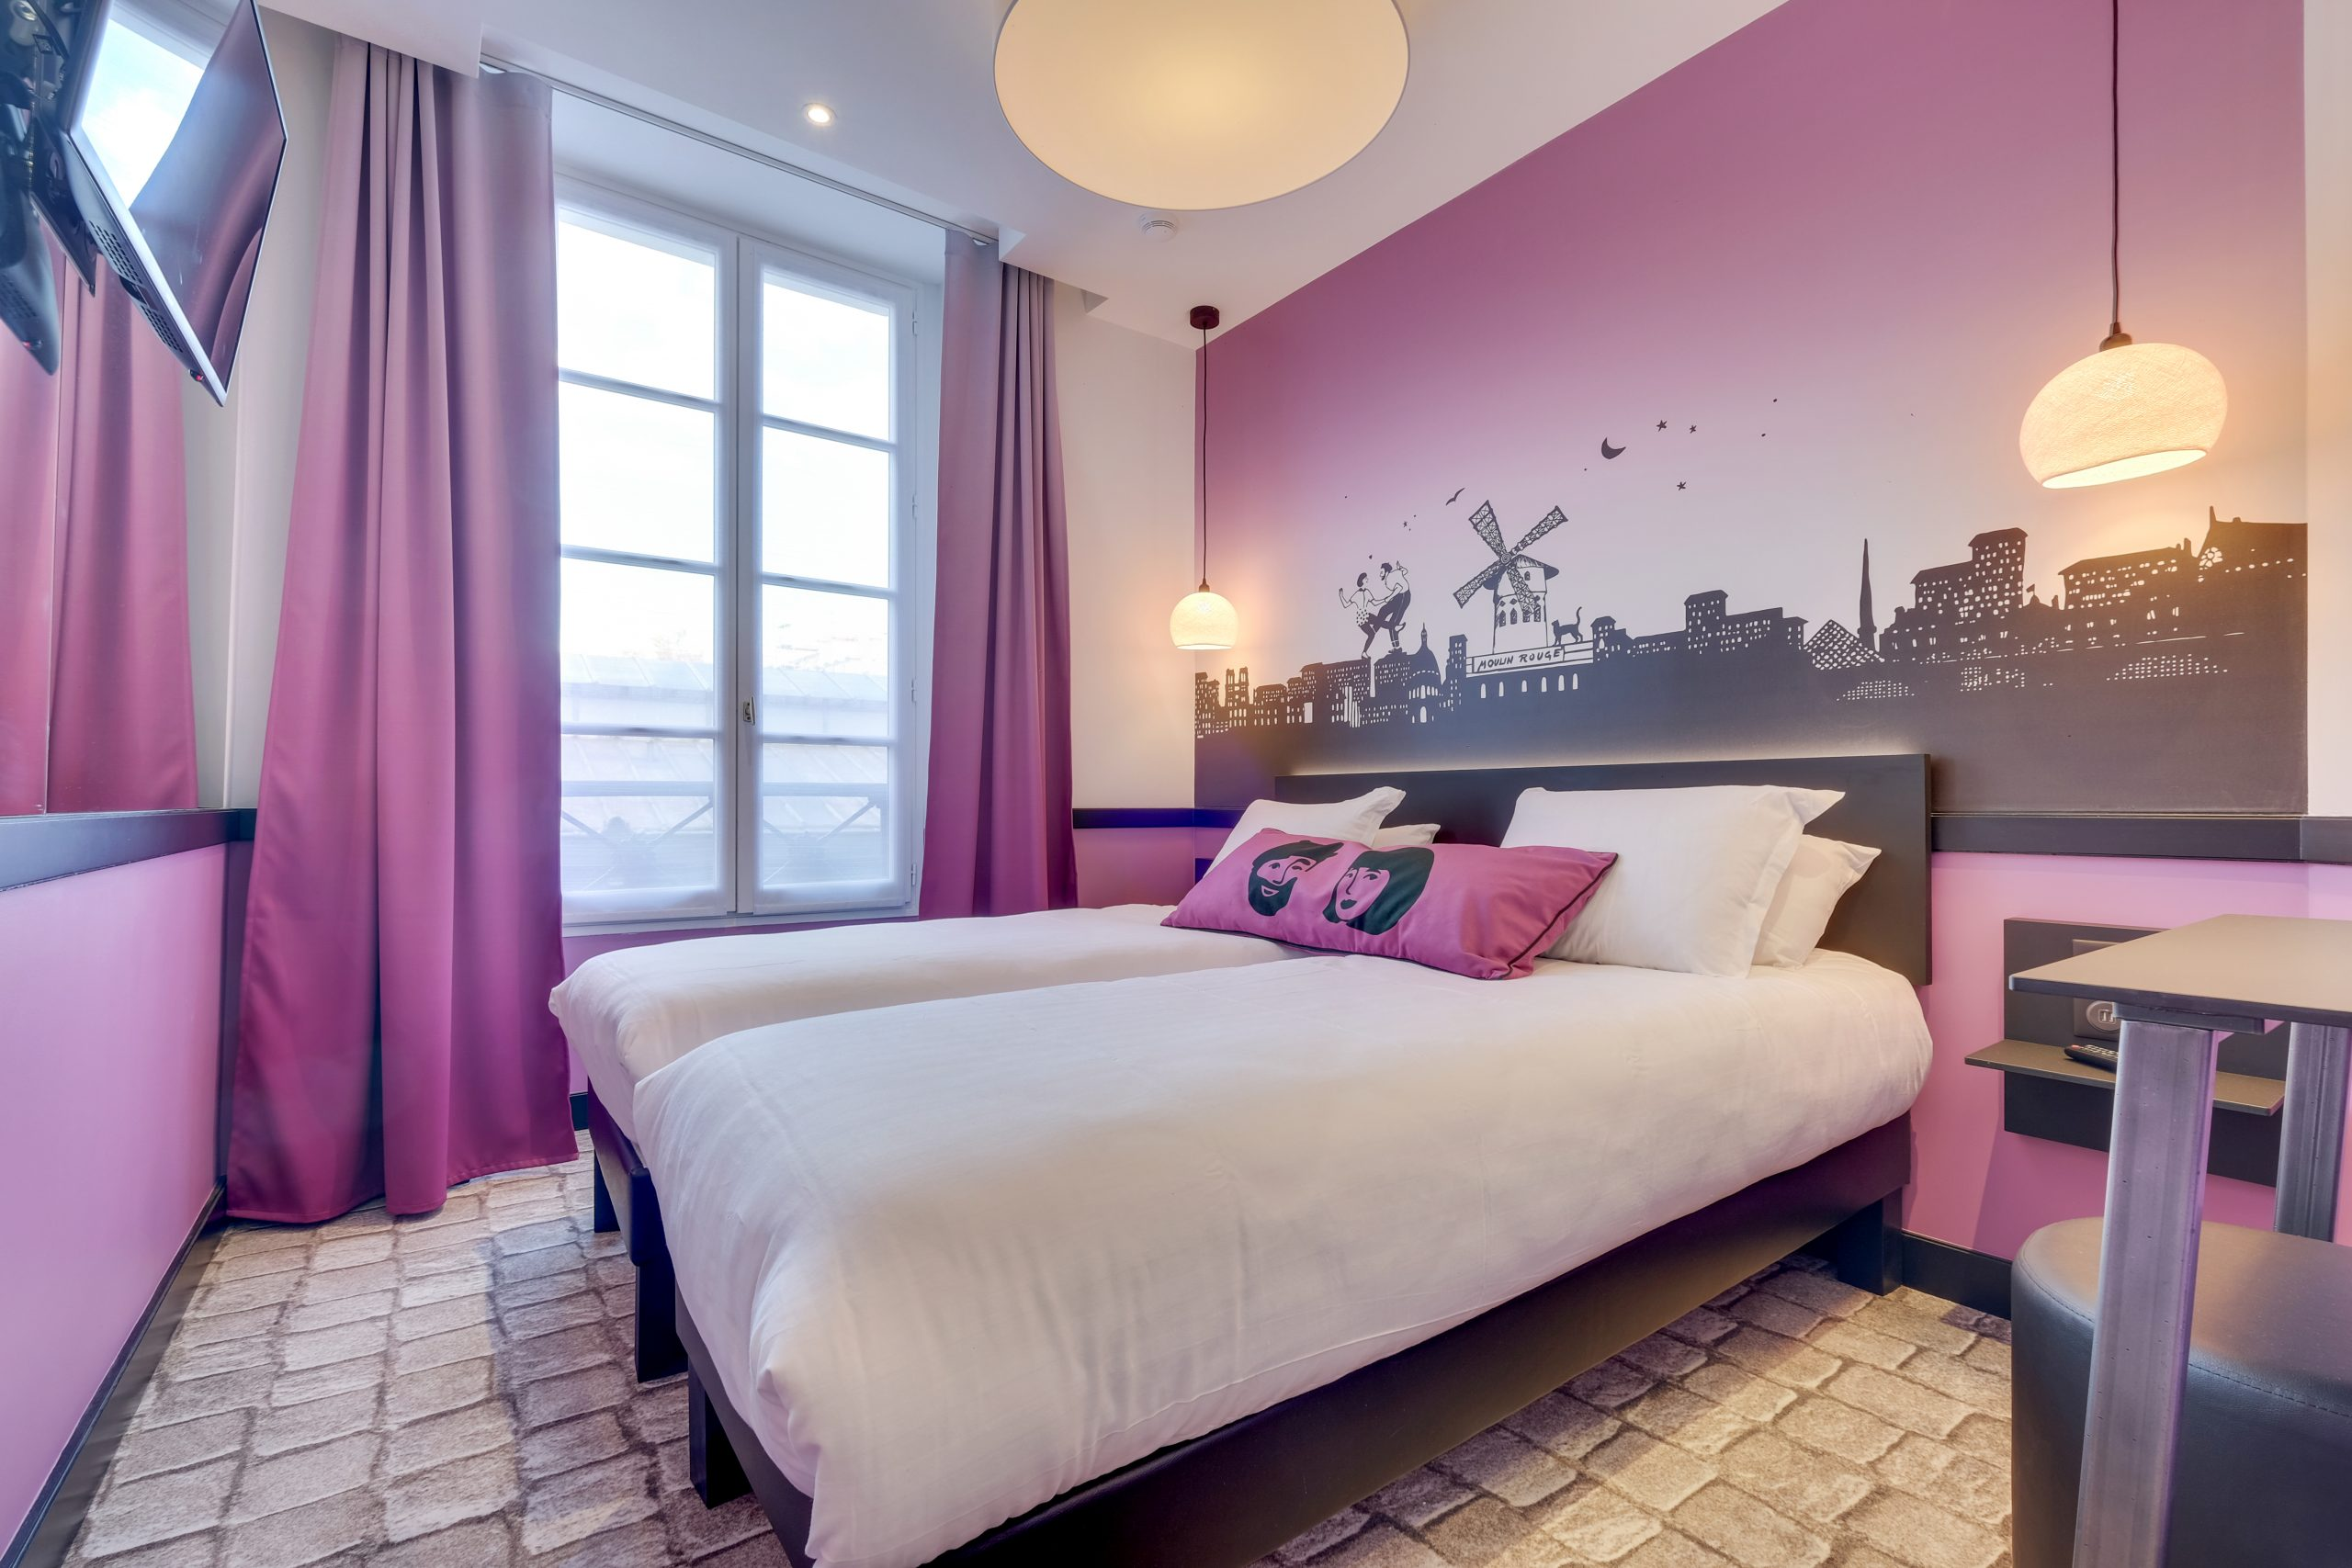 Hotel Lucien & Marinette - Chambre Twin Rose 2